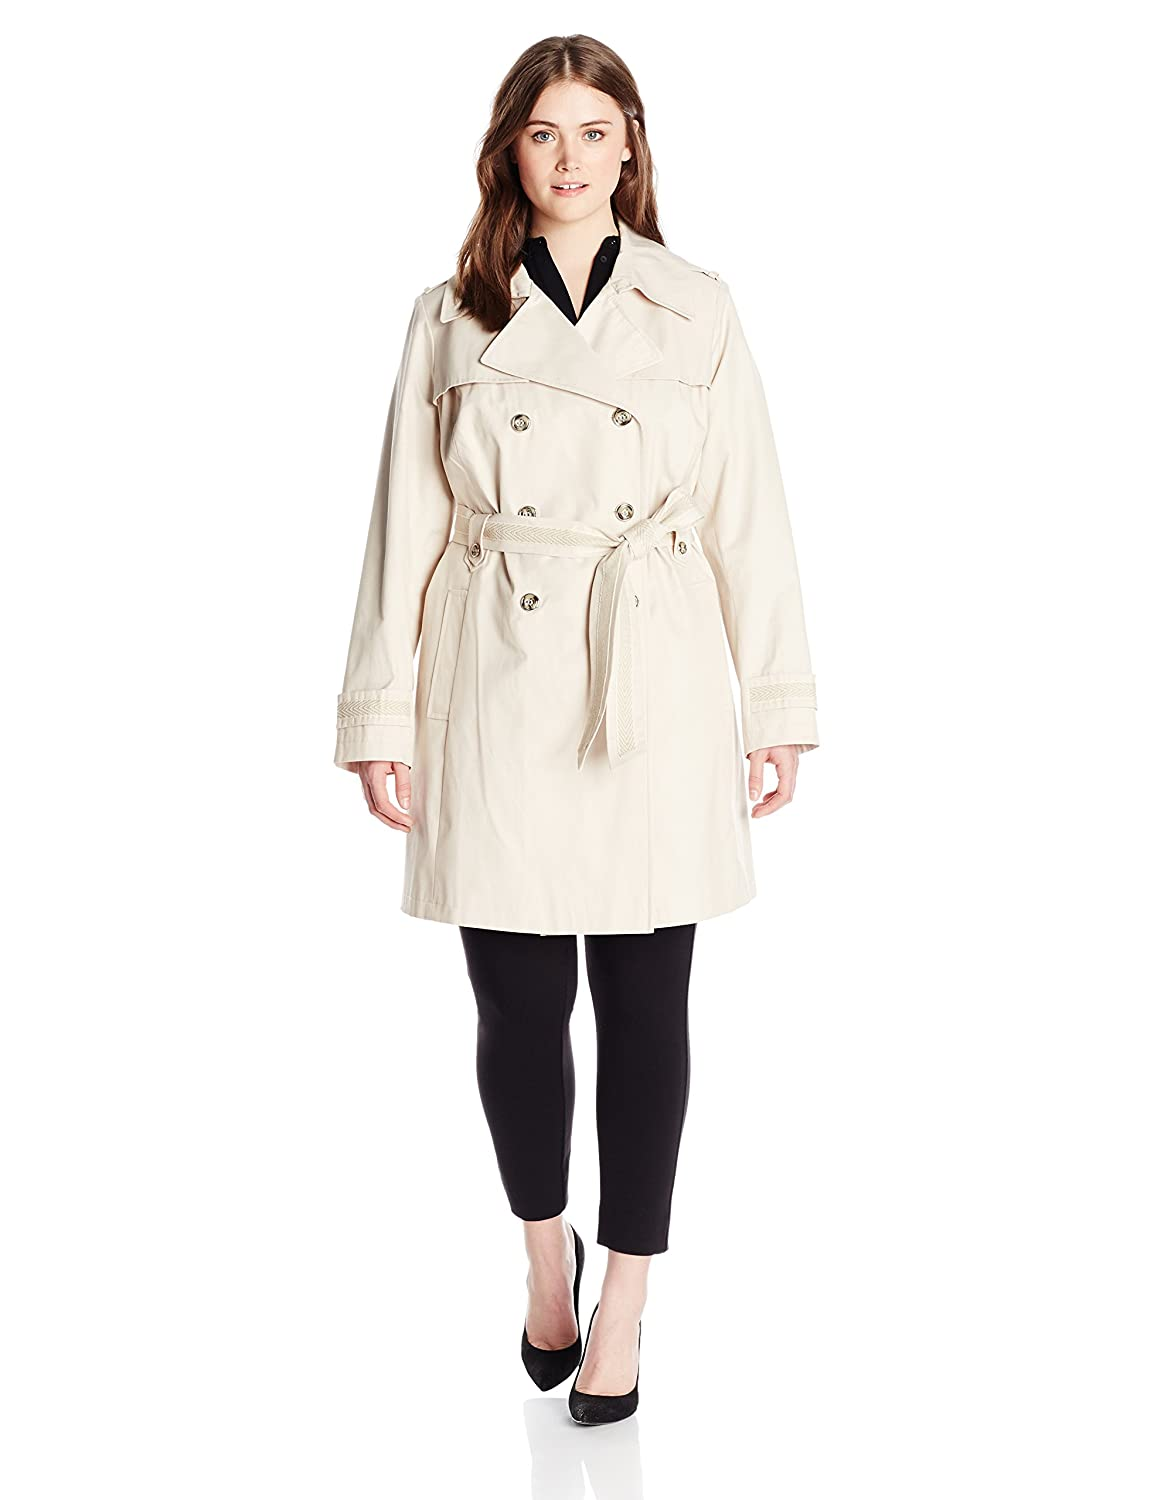 Via Spiga Womens Plus-Size Double-Breasted Trench Coat with Belt